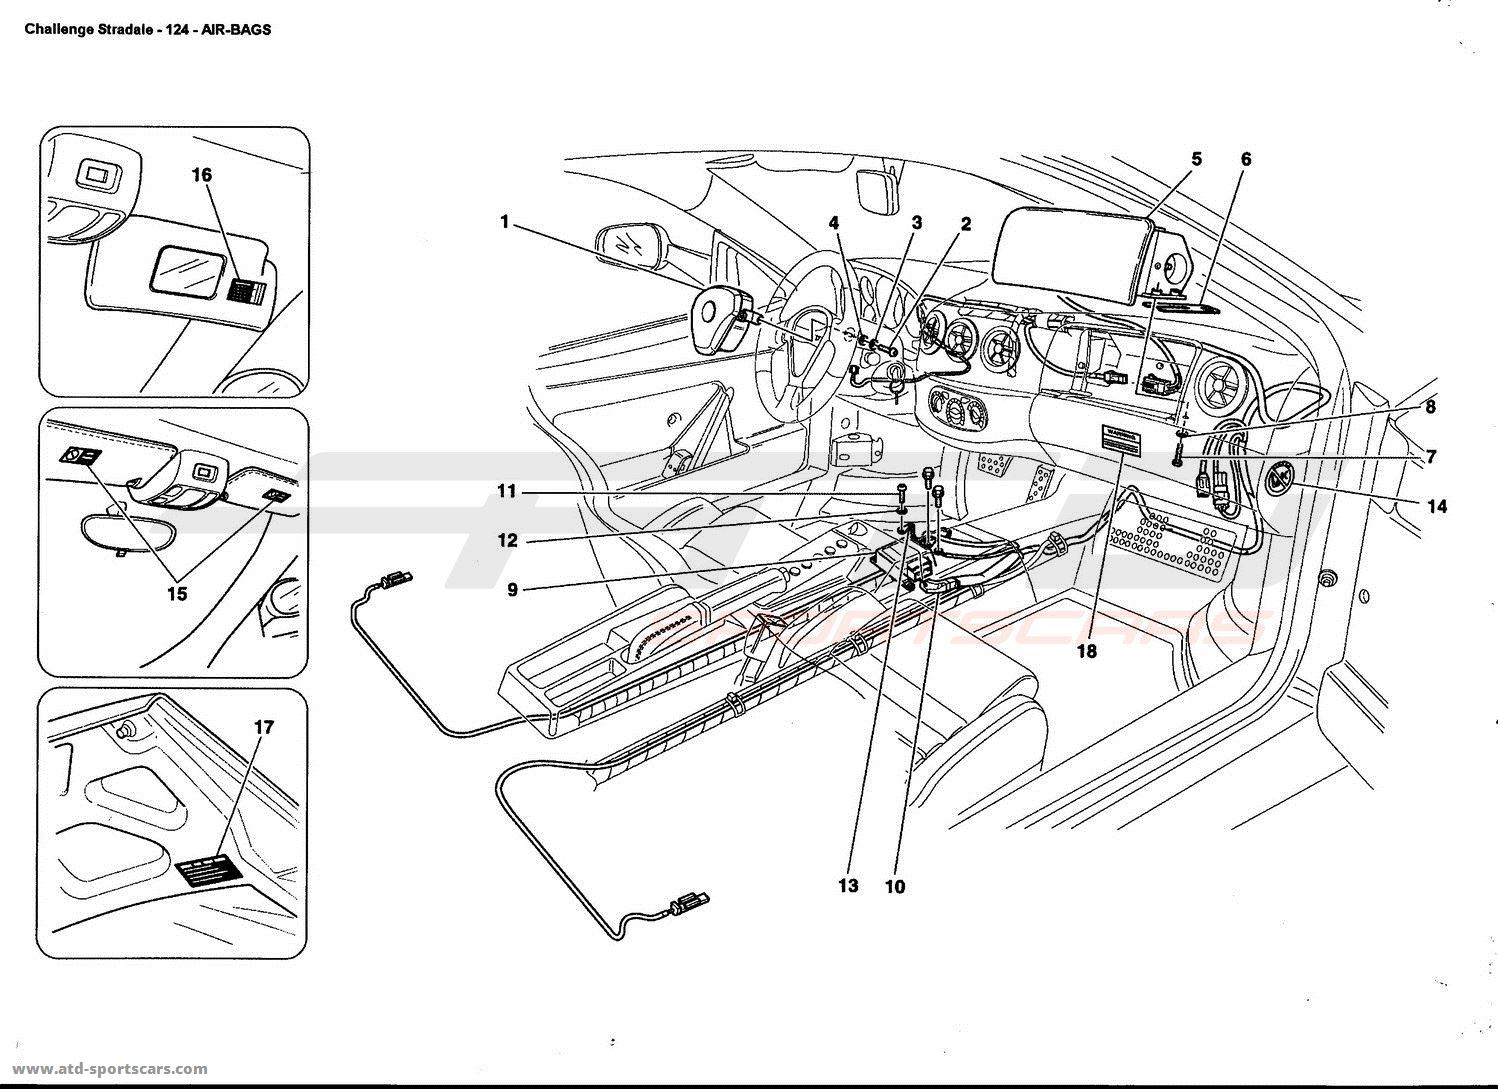 Ferrari 360 Challenge Stradale Interior Parts At Atd